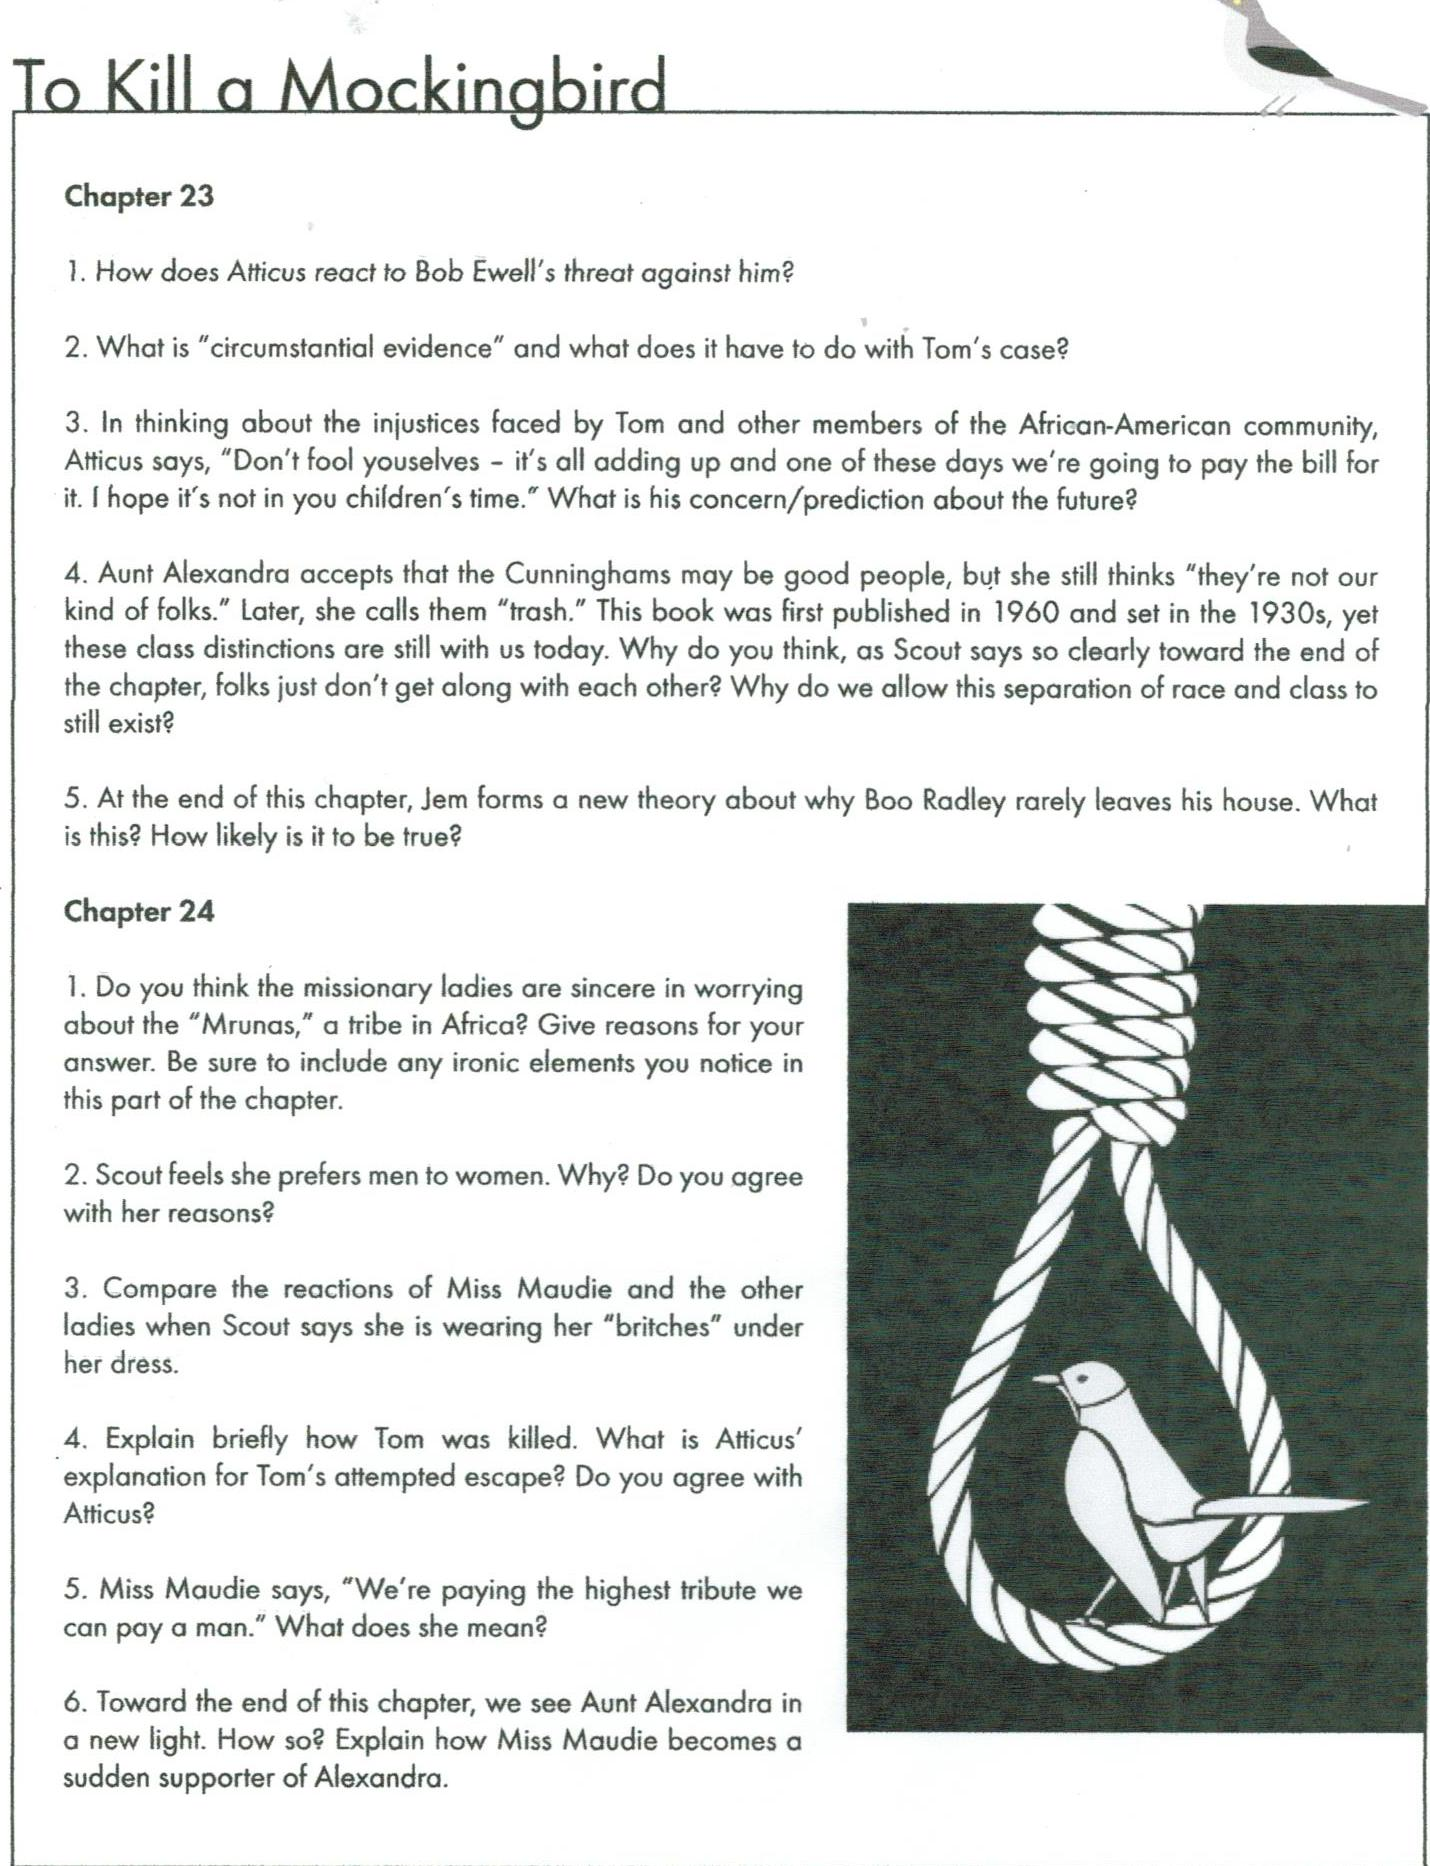 to kill a mockingbird chapter 13 15 study questions Understanding to kill a mockingbird a novel by harper lee, study guides, analyses, critique, reviews, movie, lesson plans, webquests, blacks, racial discrimination contents: about harper lee, character list, short summary, full summary and analysis, summary and analysis of chapter 1-6, 7-12, 13-18, 19-24, 25-31,.